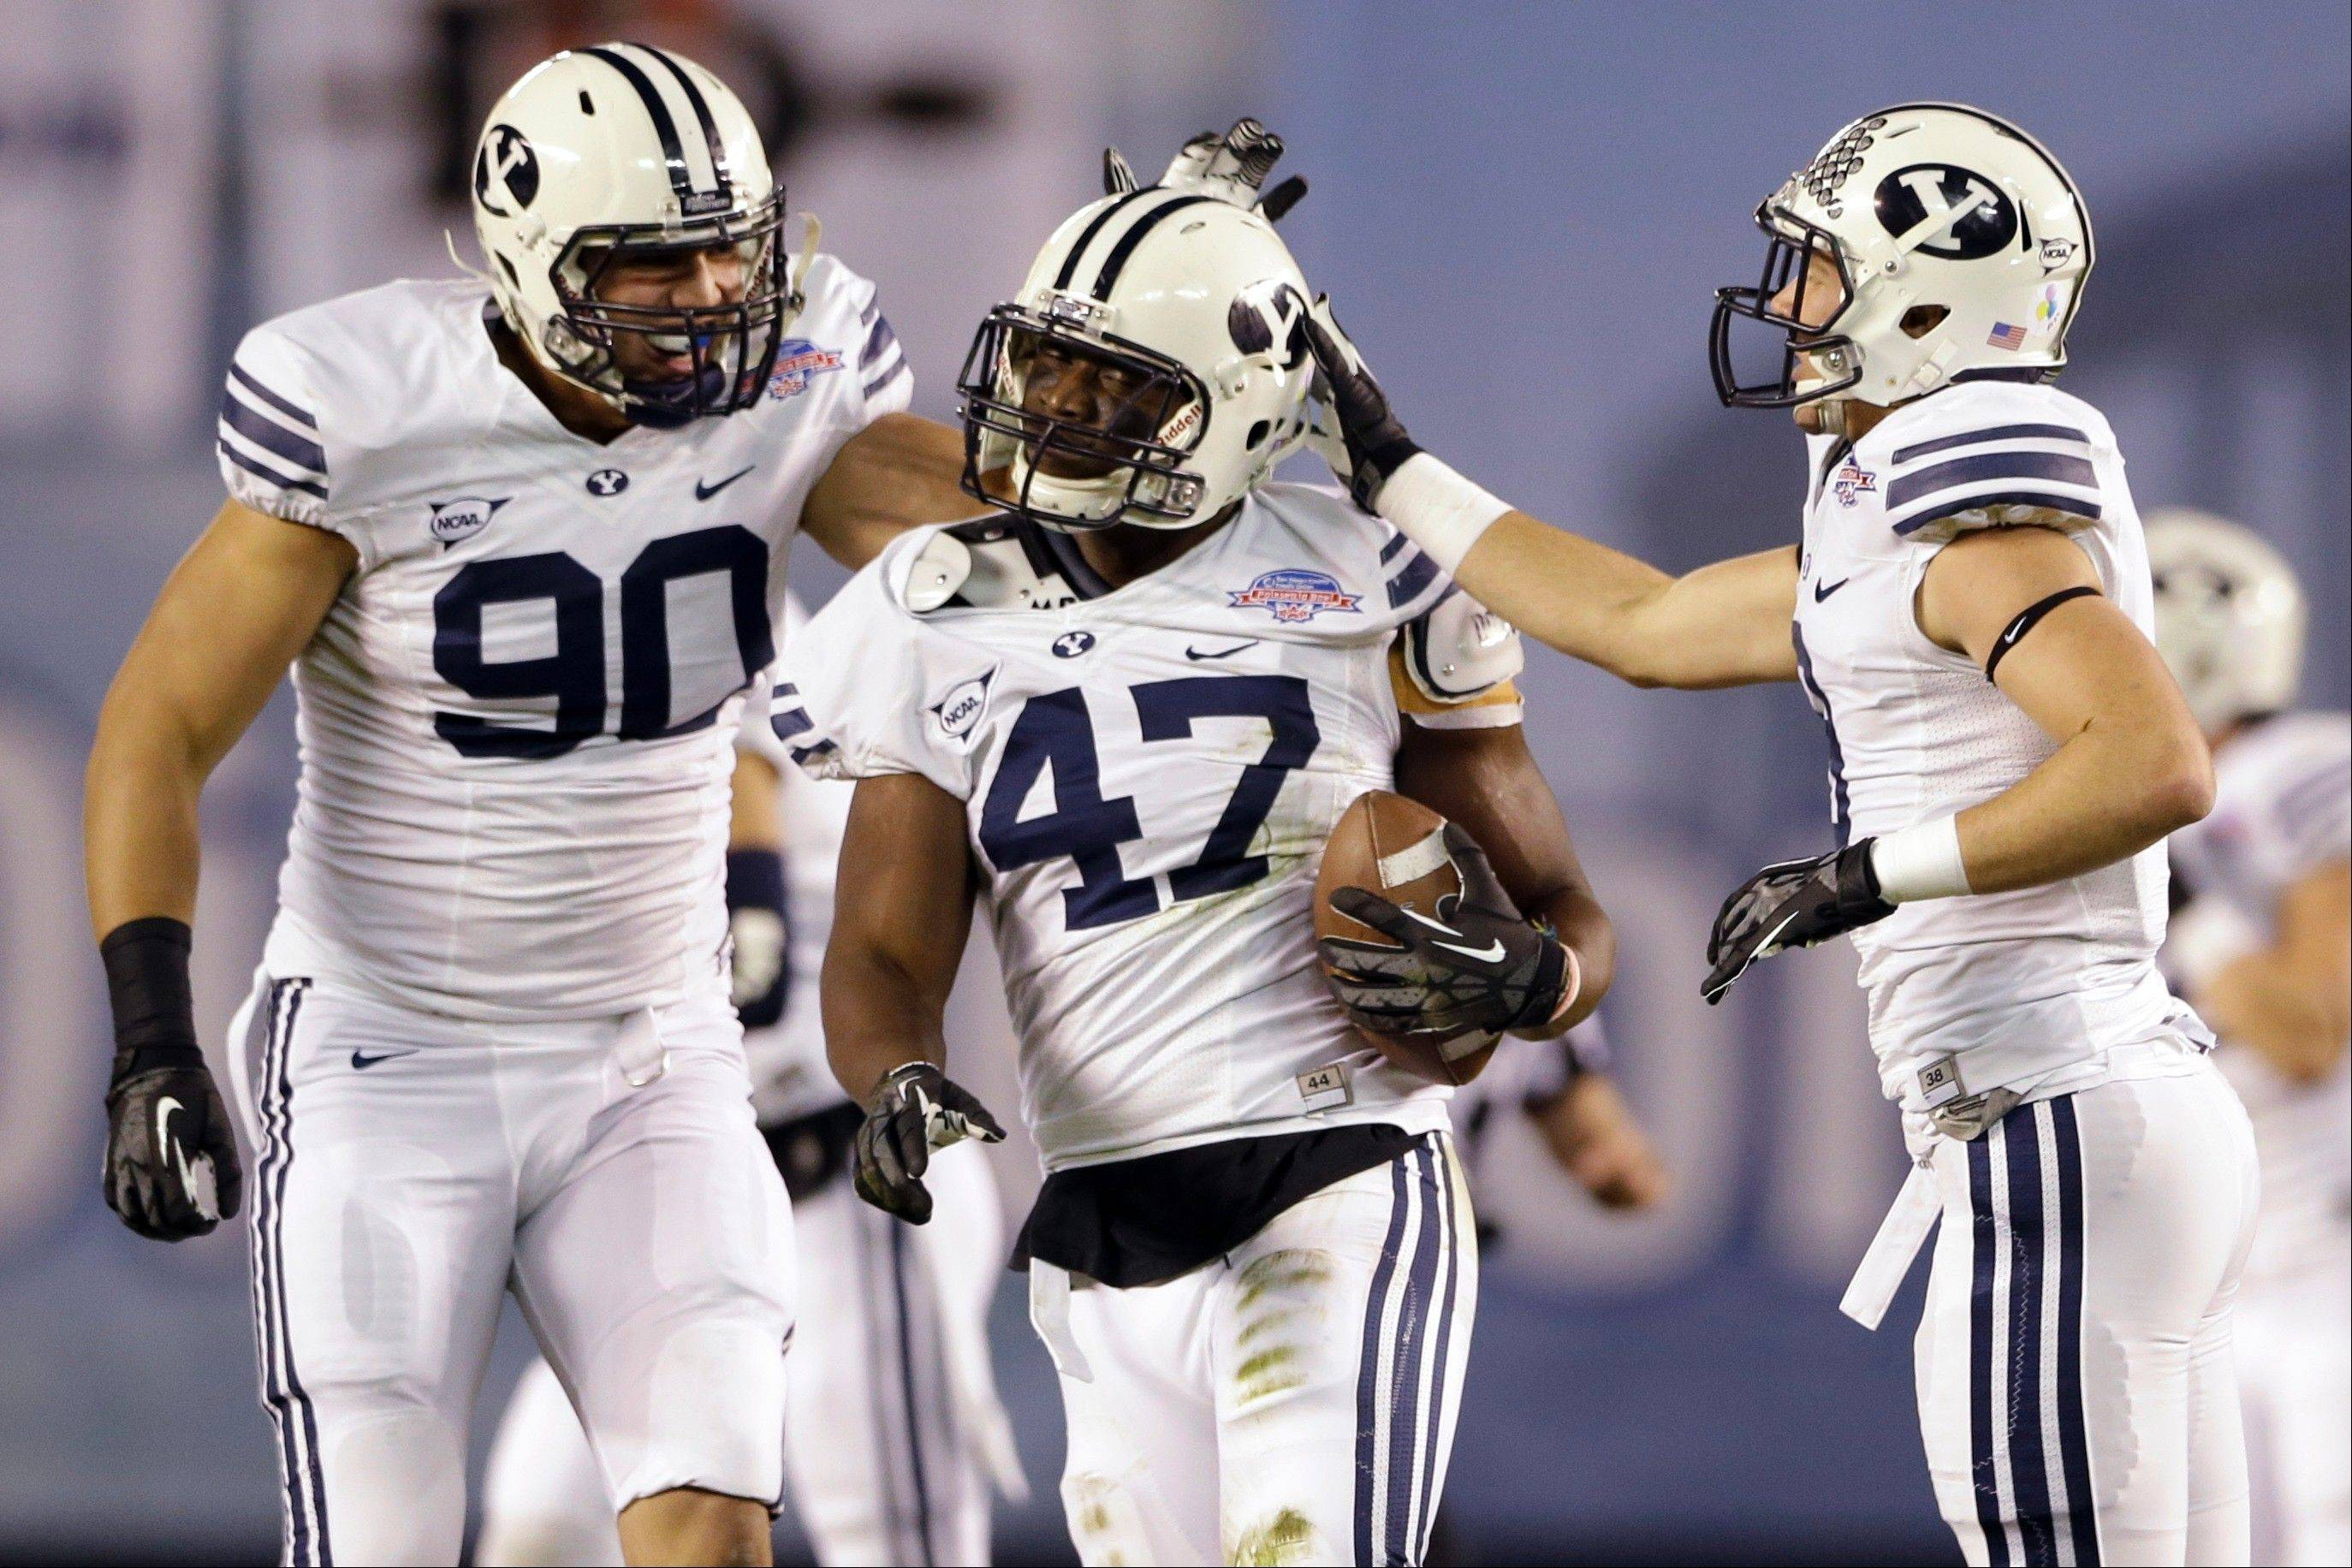 BYU linebacker Ezekiel Ansah, center, is congratulated by Bronson Kaufusi, left, and Daniel Sorensen after intercepting a San Diego State pass during the first half of the Poinsettia Bowl NCAA college football game, Thursday, Dec. 20, 2012, in San Diego.